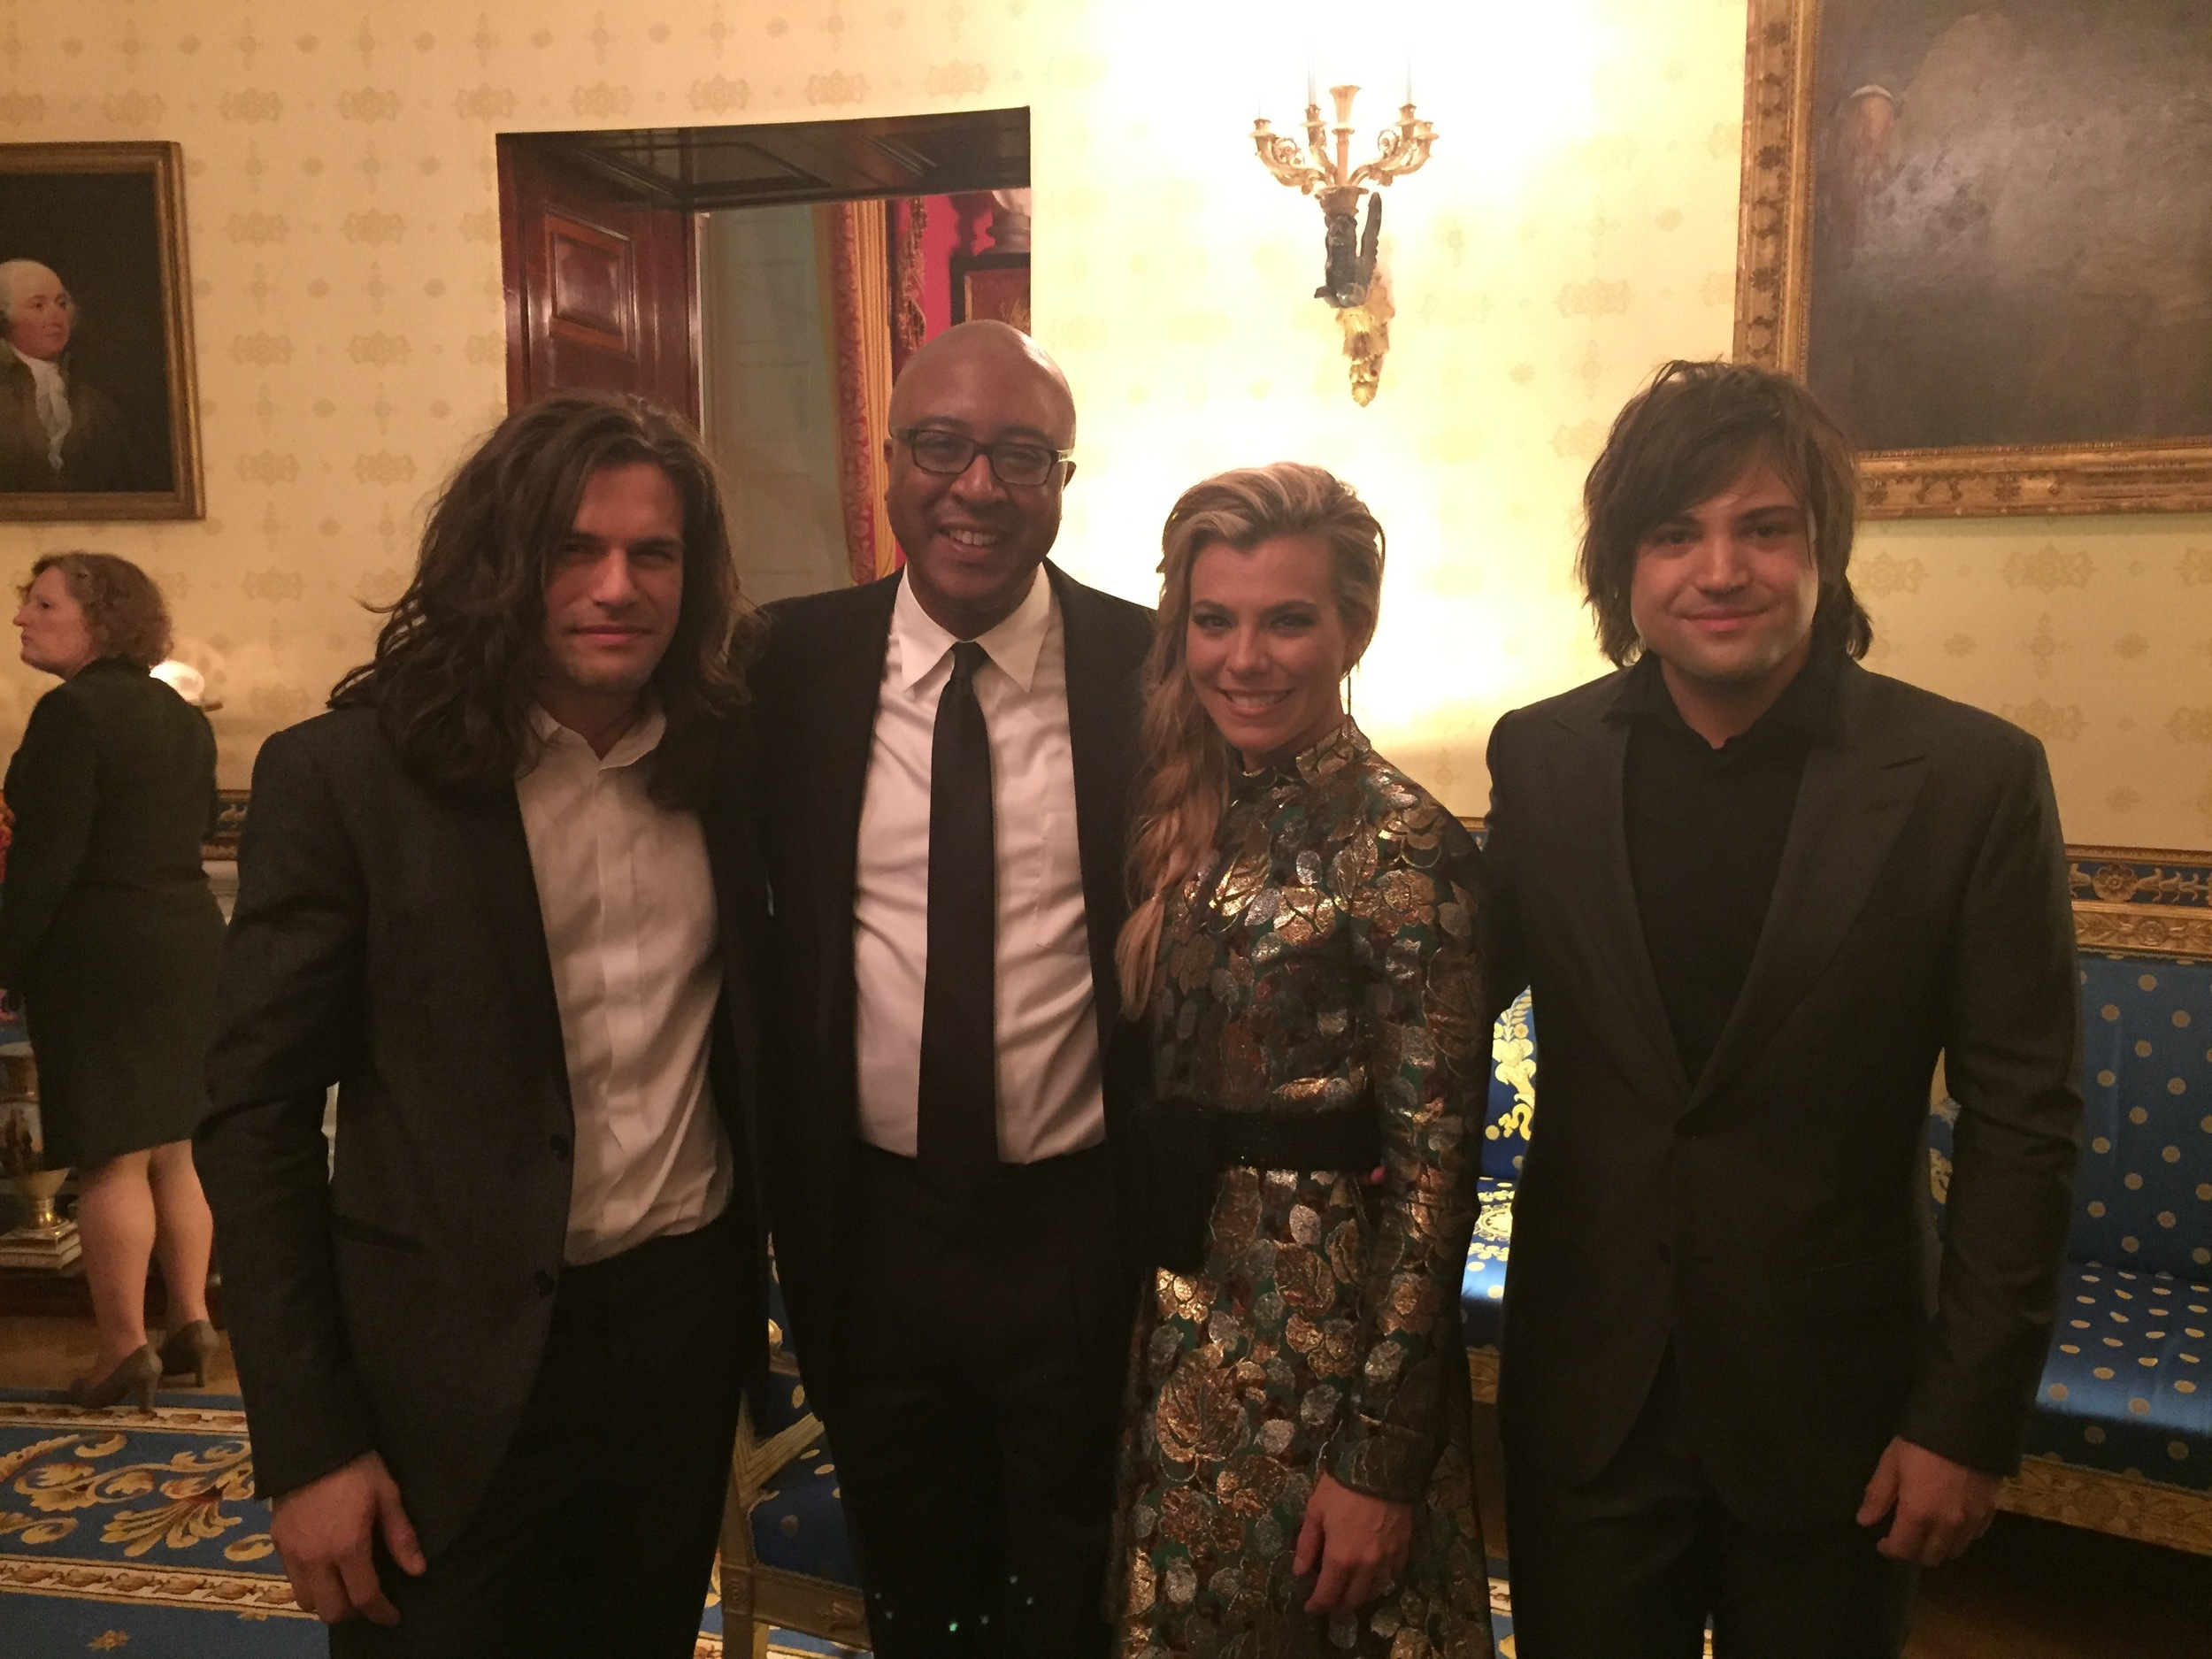 With The Band Perry